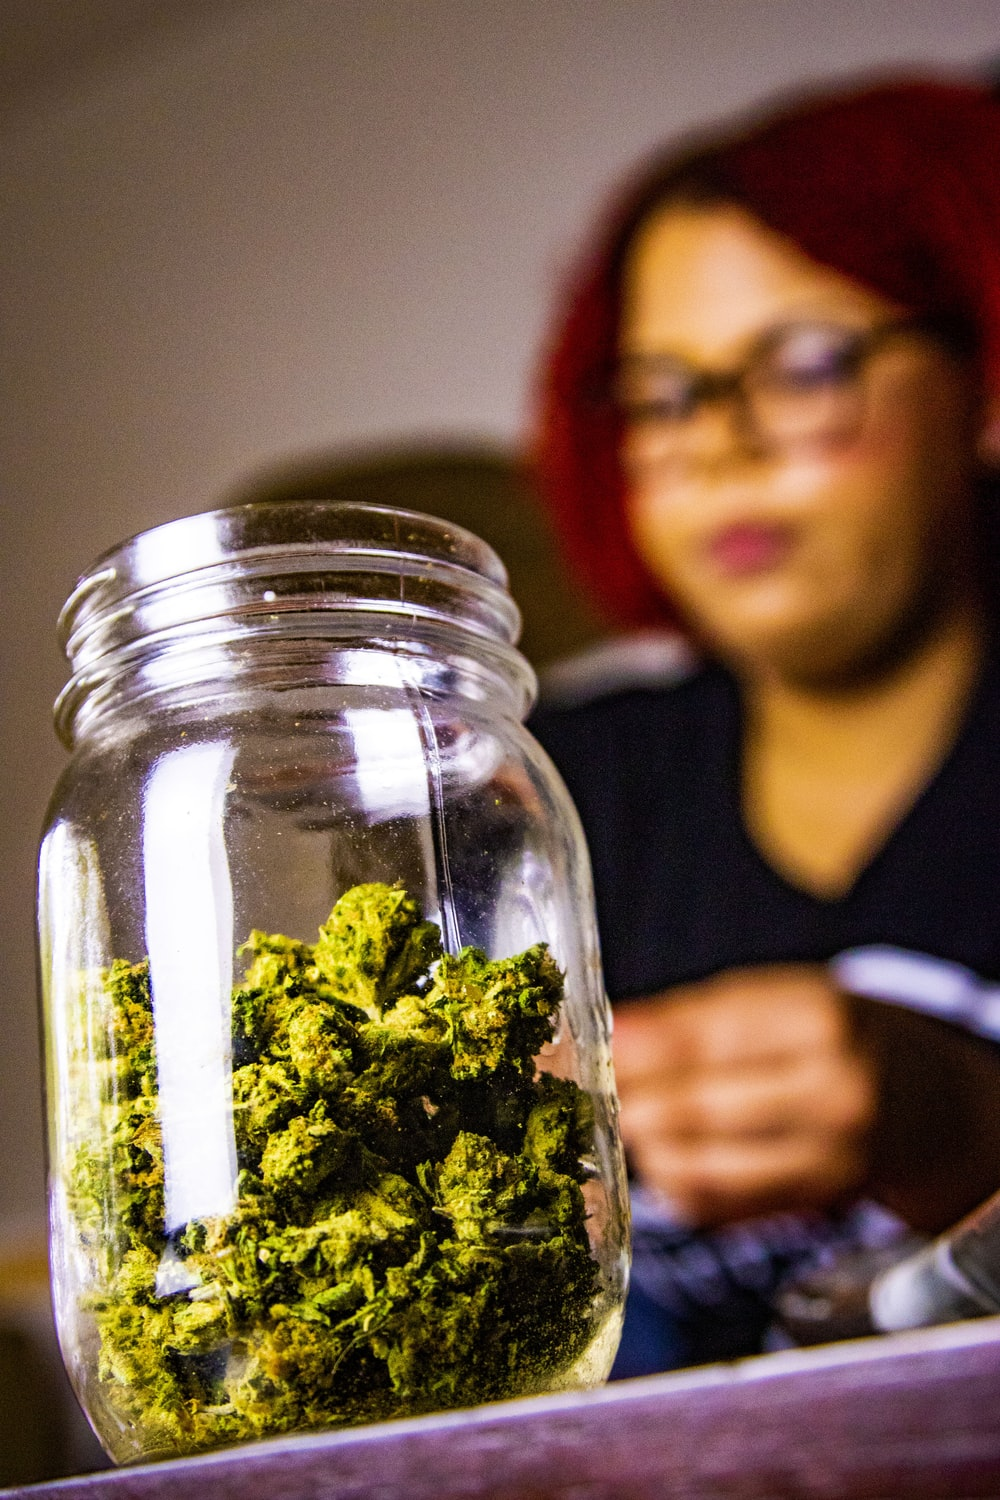 selective focus photography of kush on jar near woman